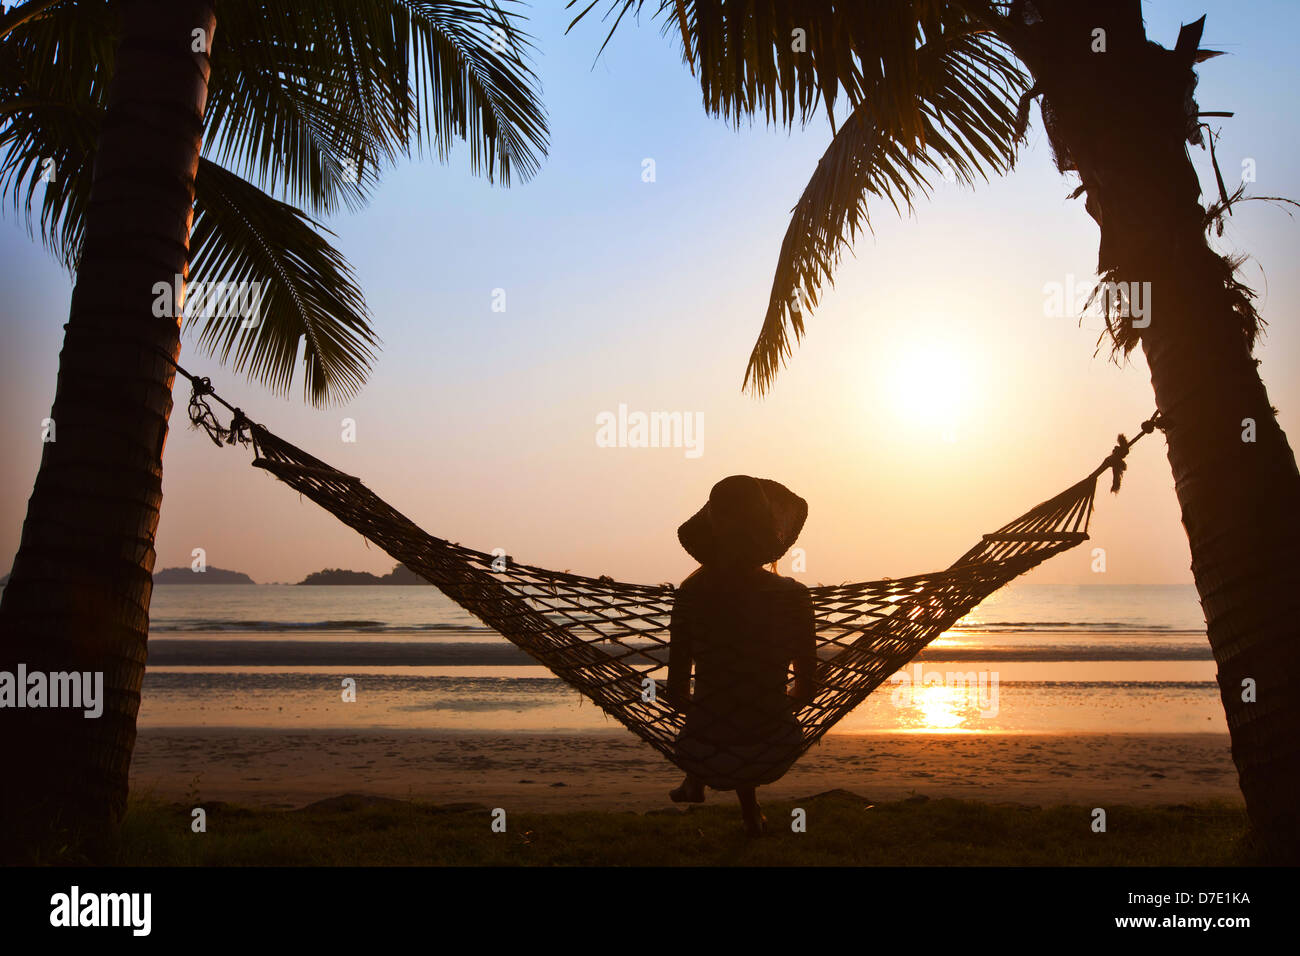 silhouette of woman in hat sitting in hammock at sunset on the beach - Stock Image